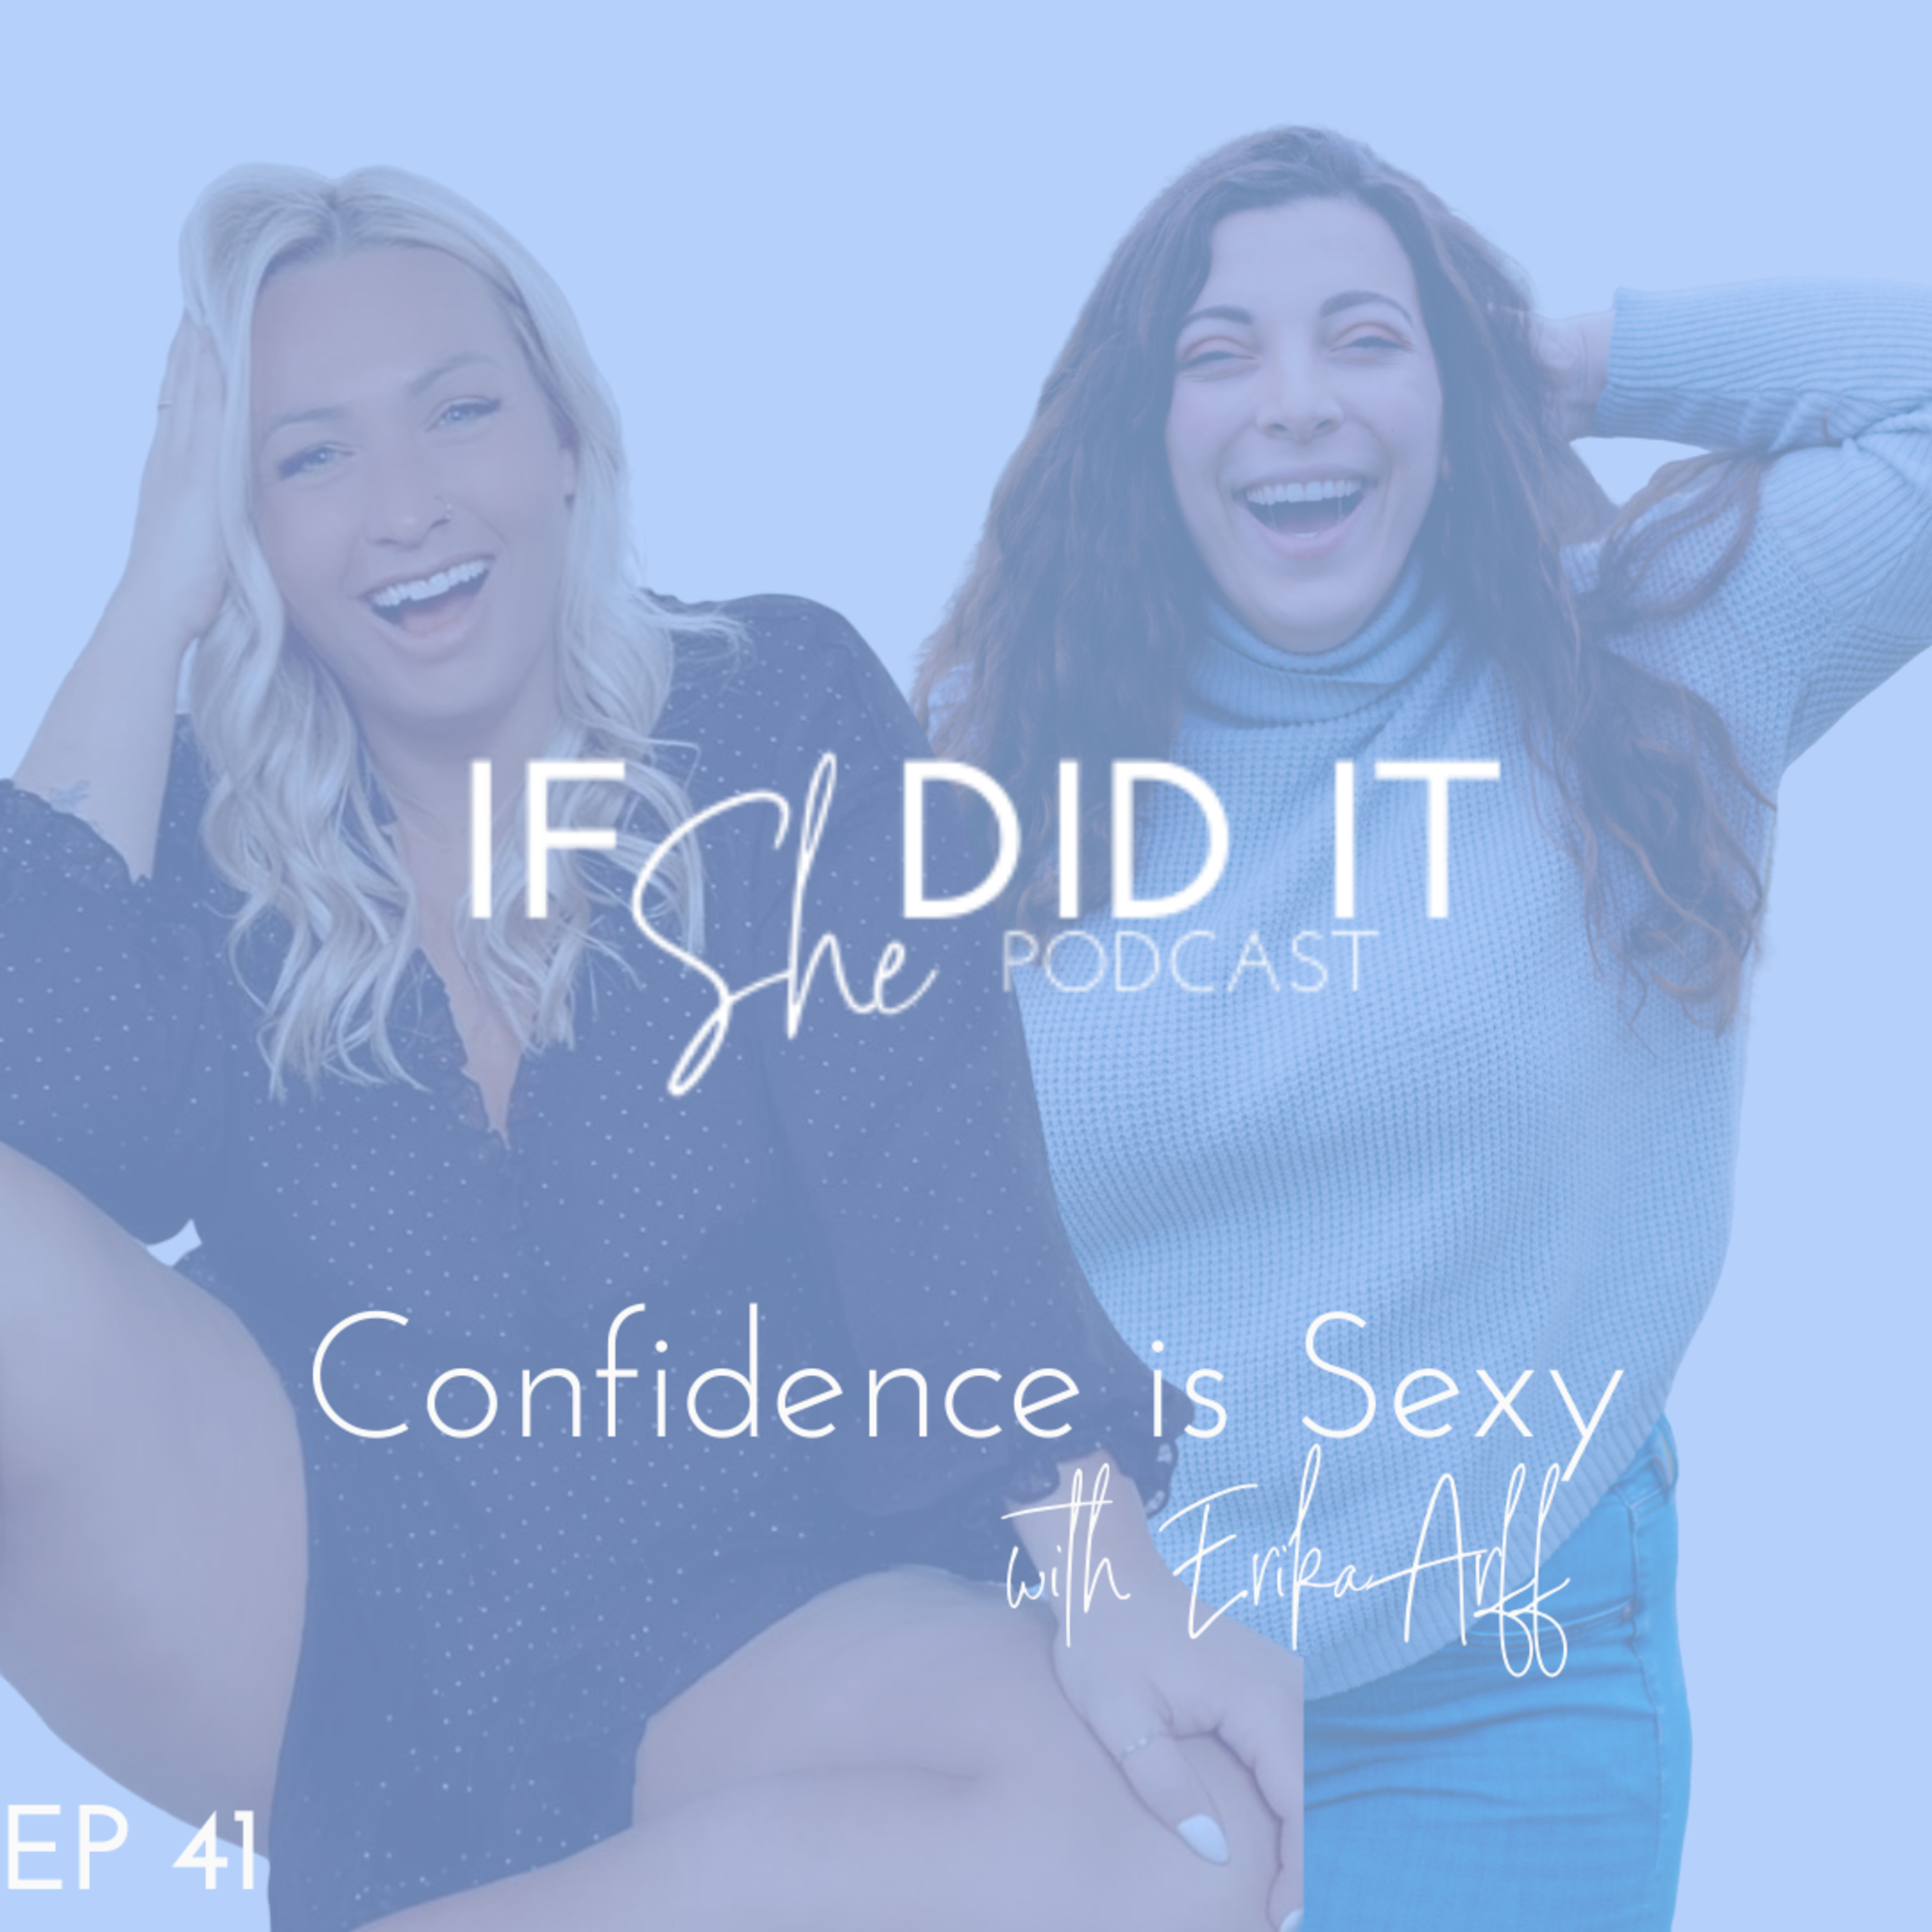 Confidence is Sexy with Erika Arff